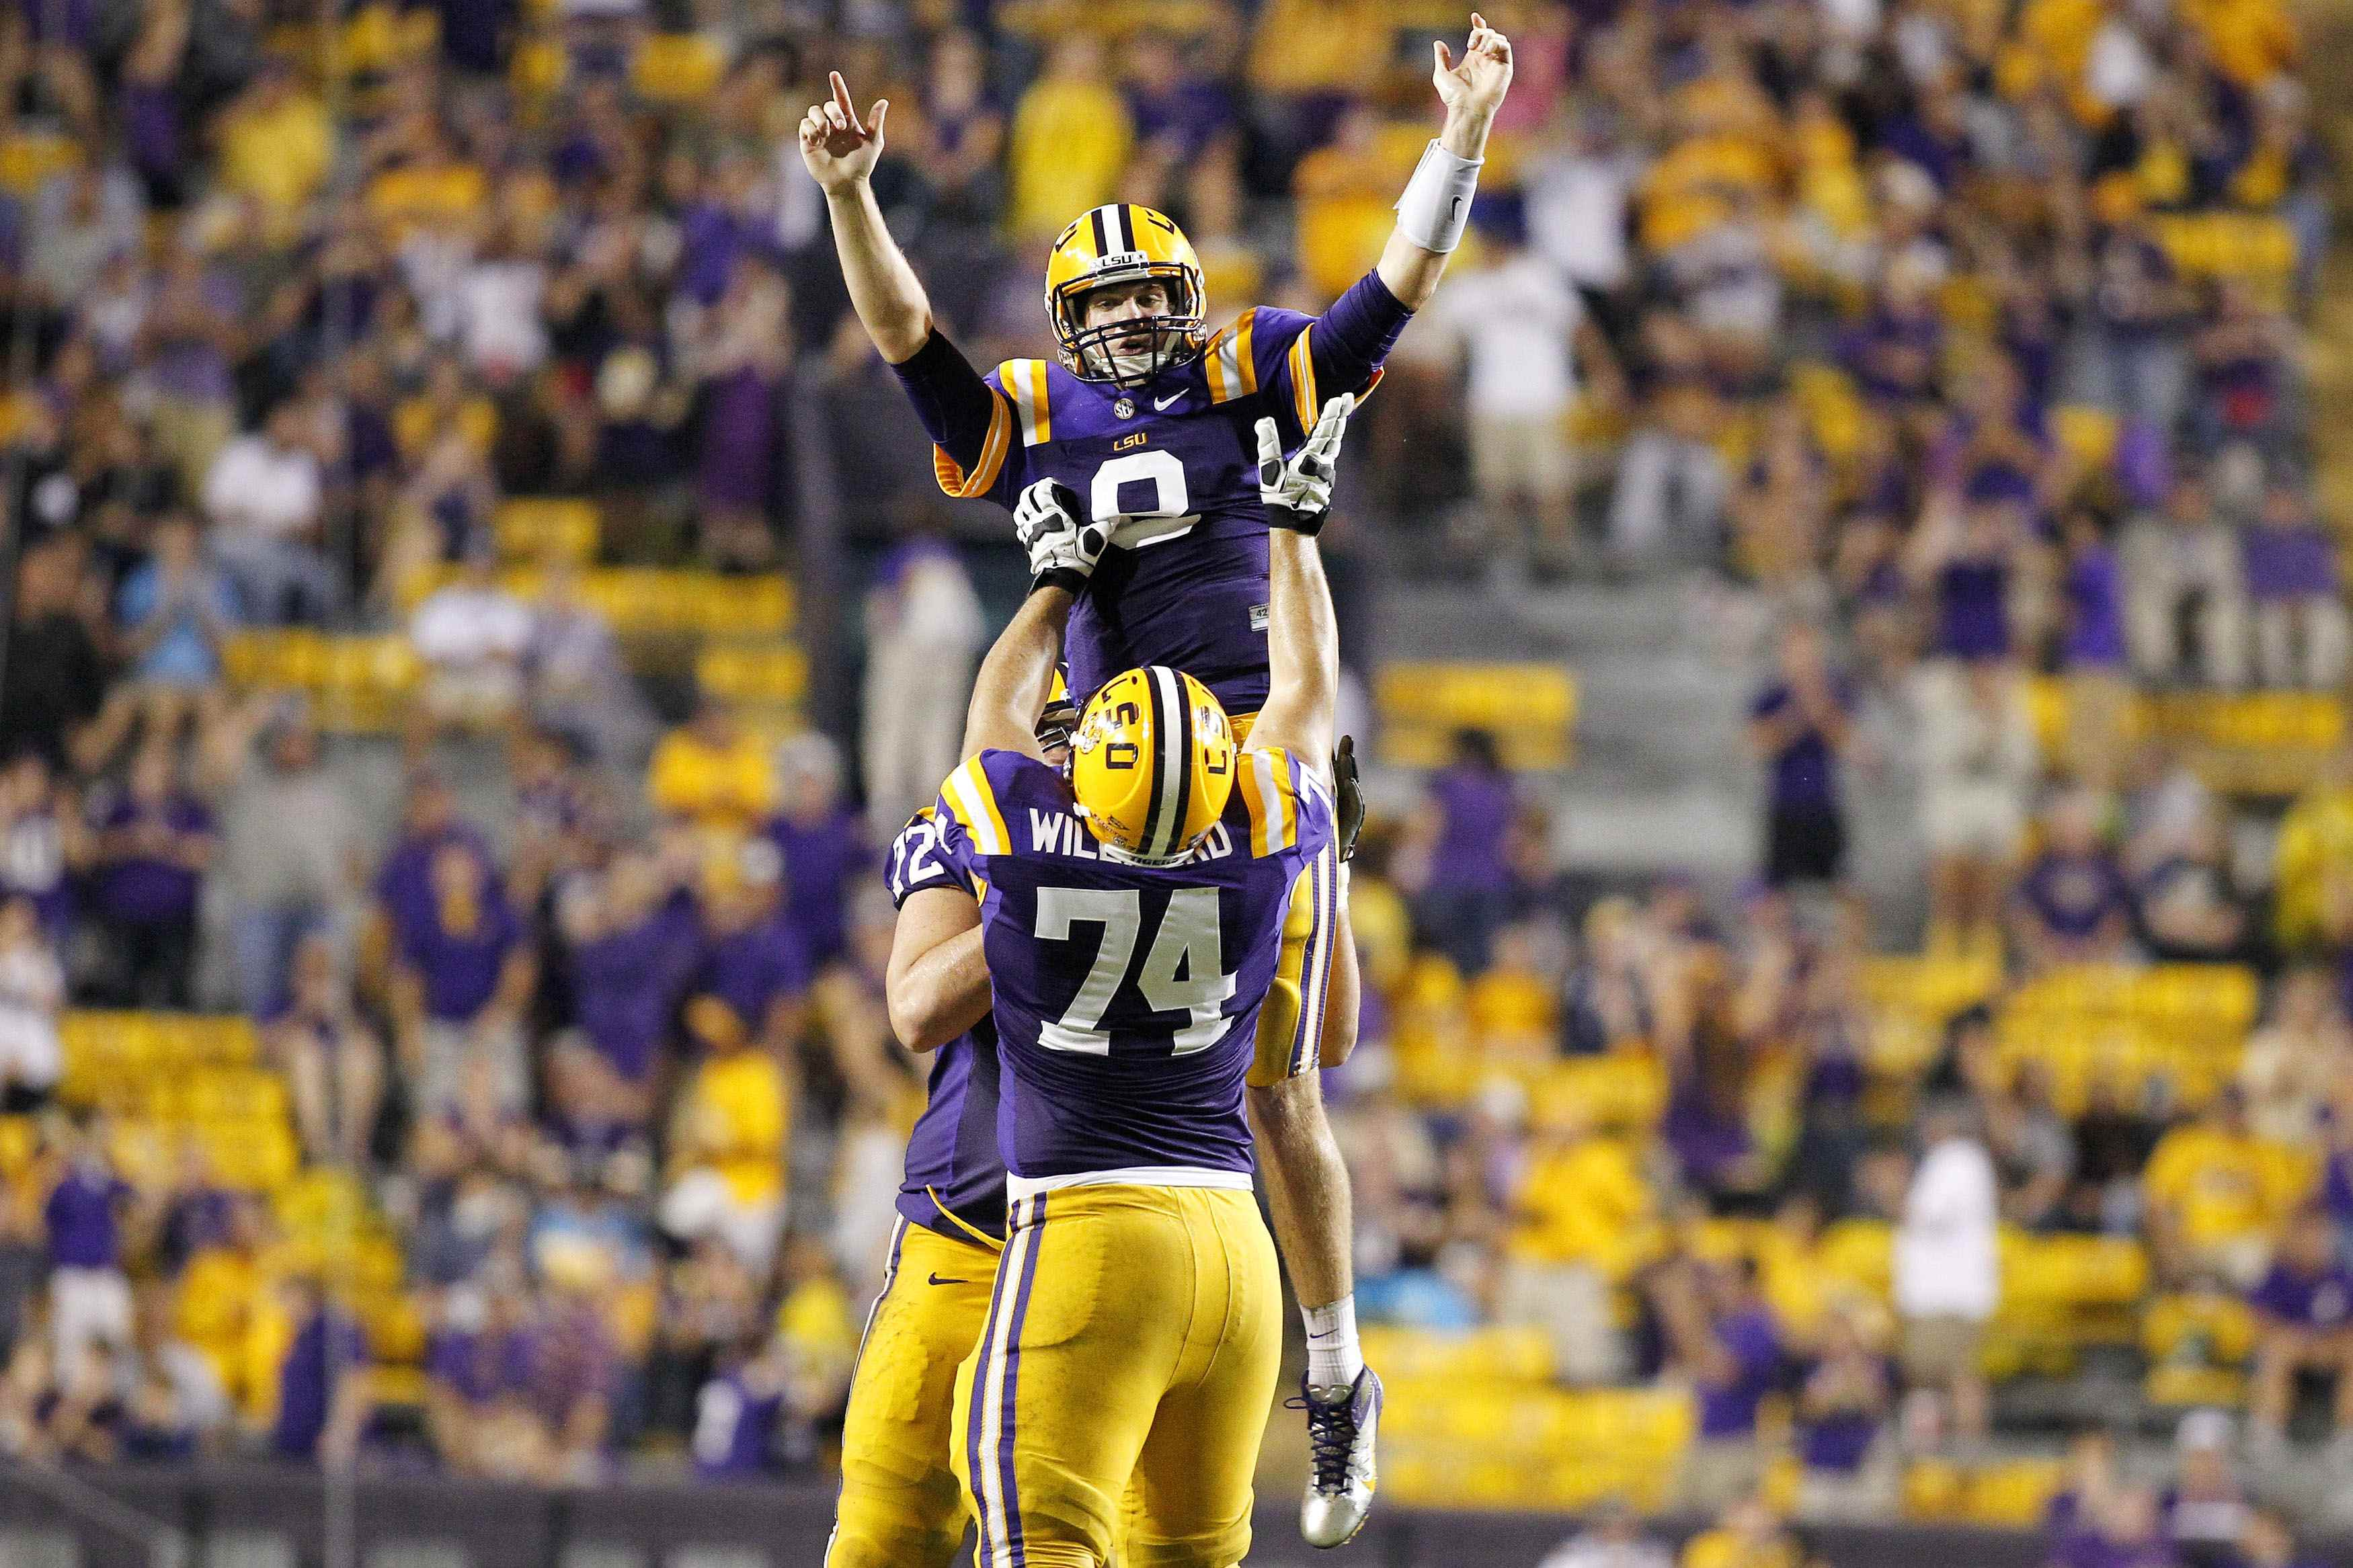 lsu alabama game stats international betting sites